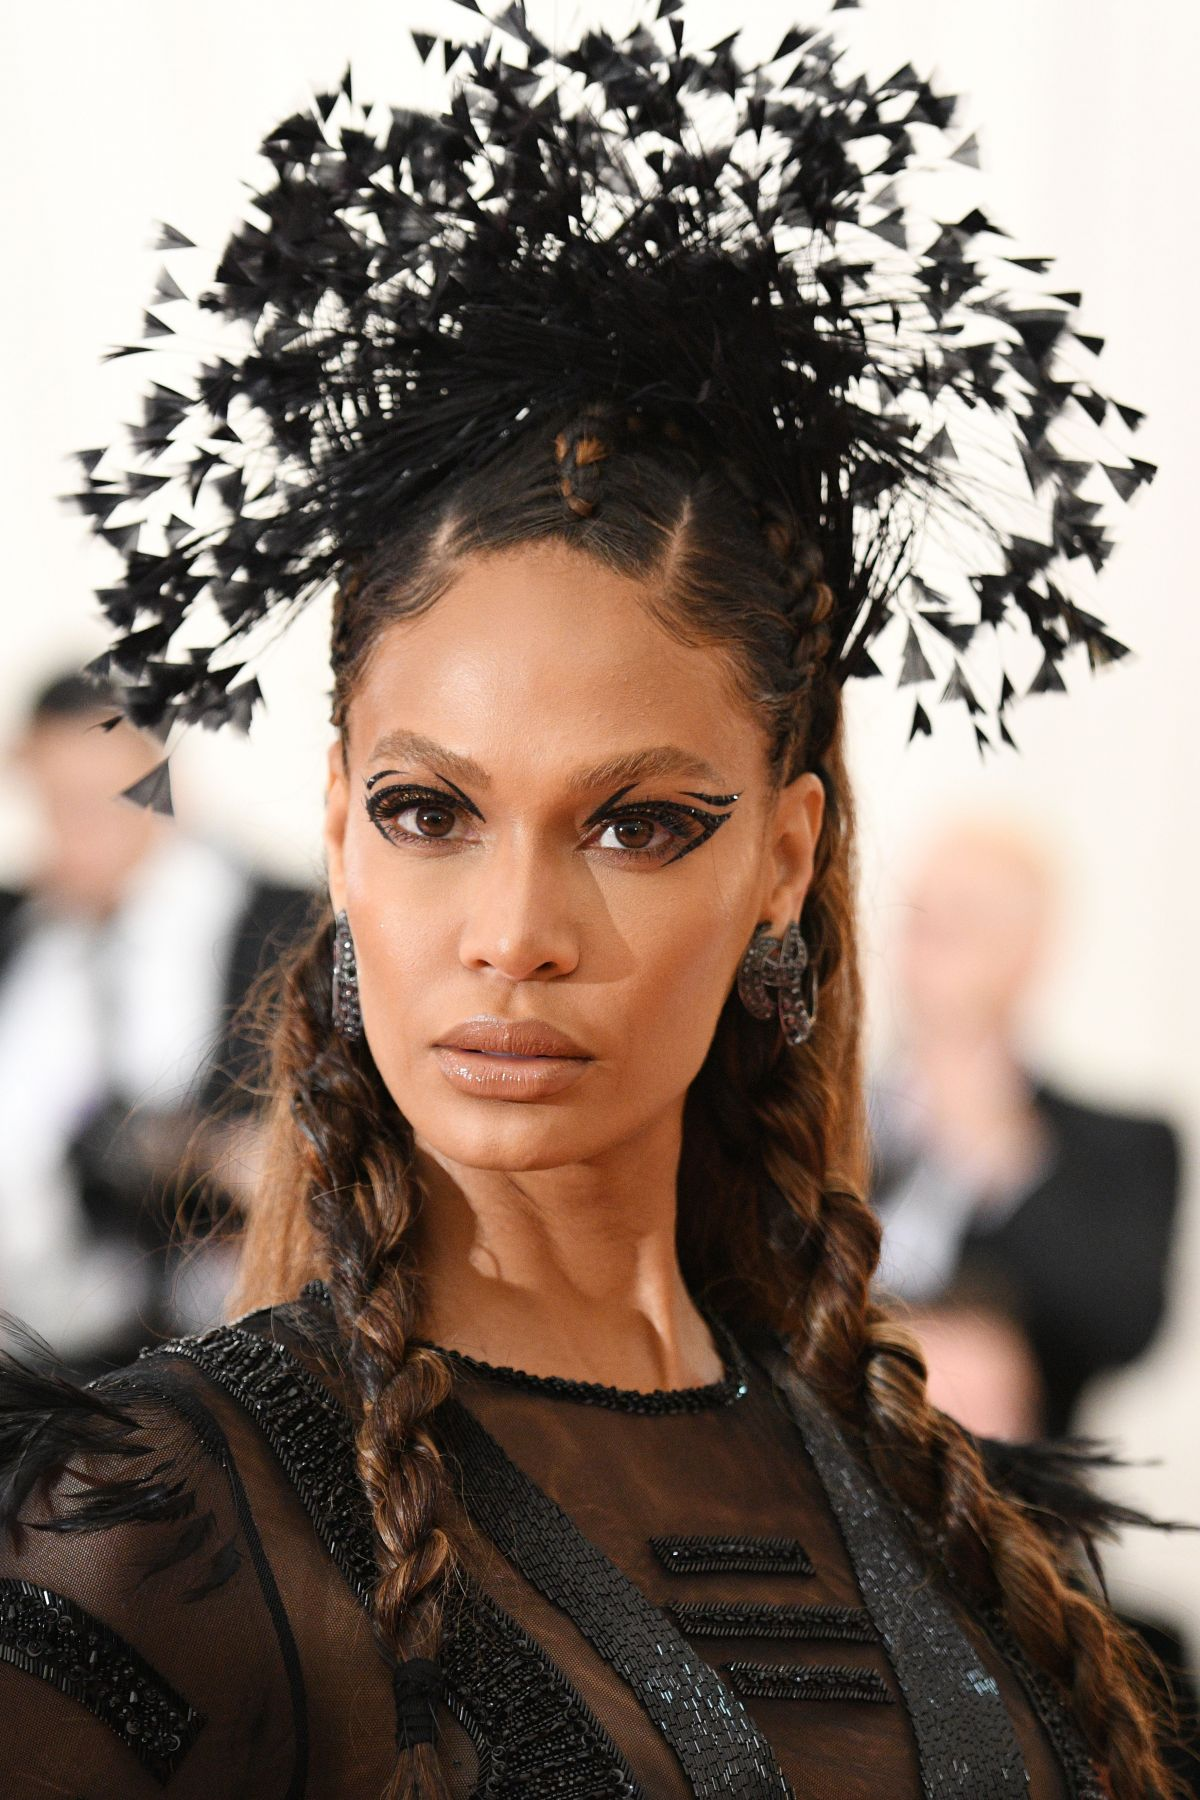 Joan Smalls Met Gala Arrivals - Joan Smalls Met Gala Arrivals